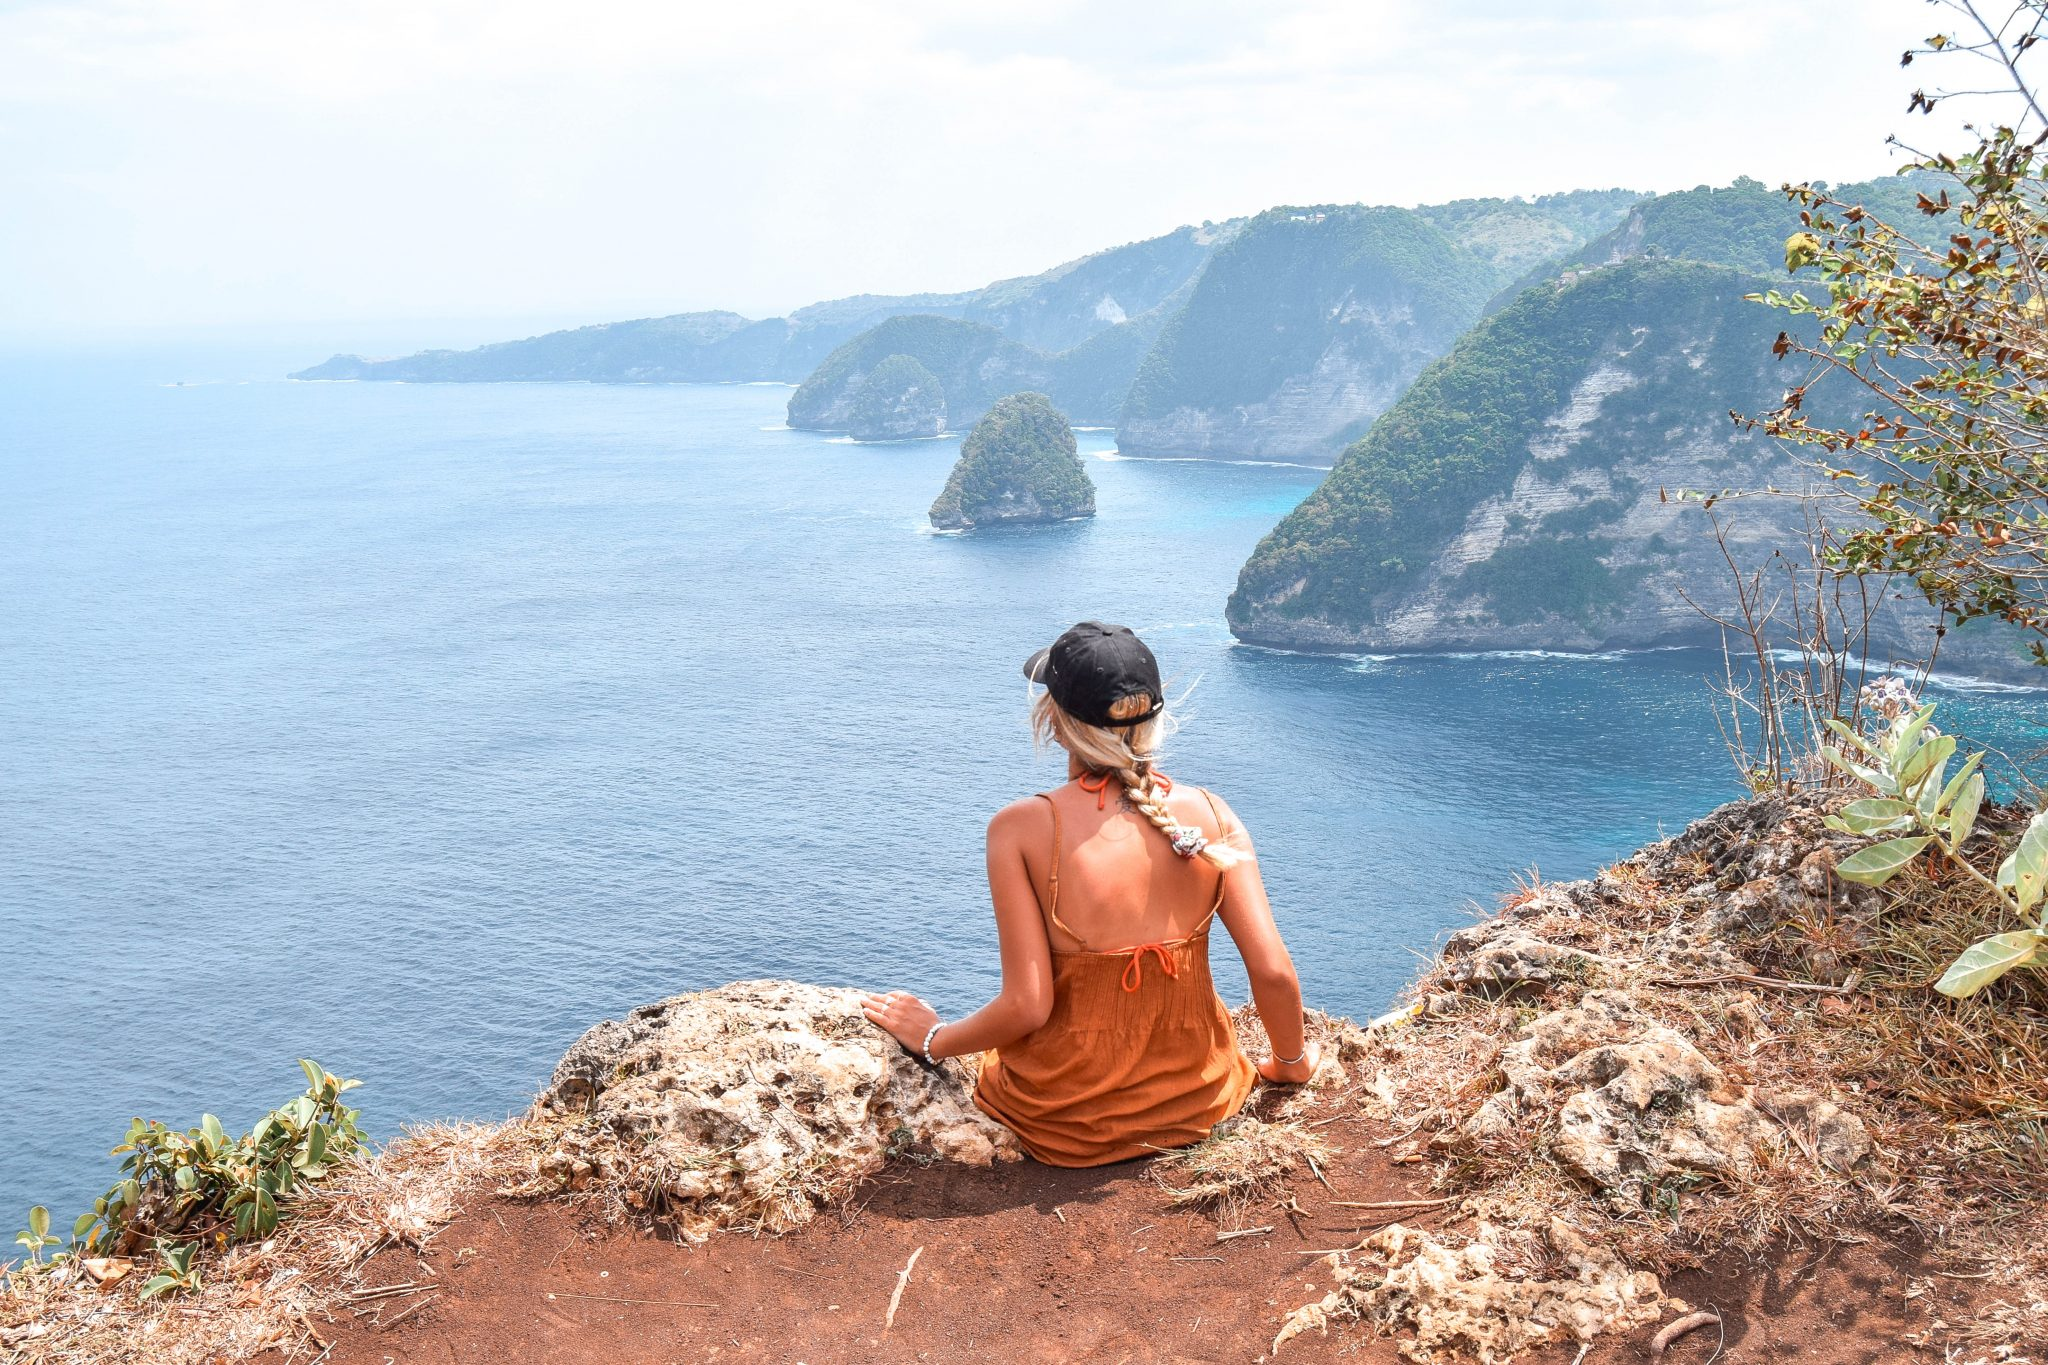 Banah Cliff Point Nusa Penida Bali Viewpoints Nusa Penida Viewpoint Nusa Islands